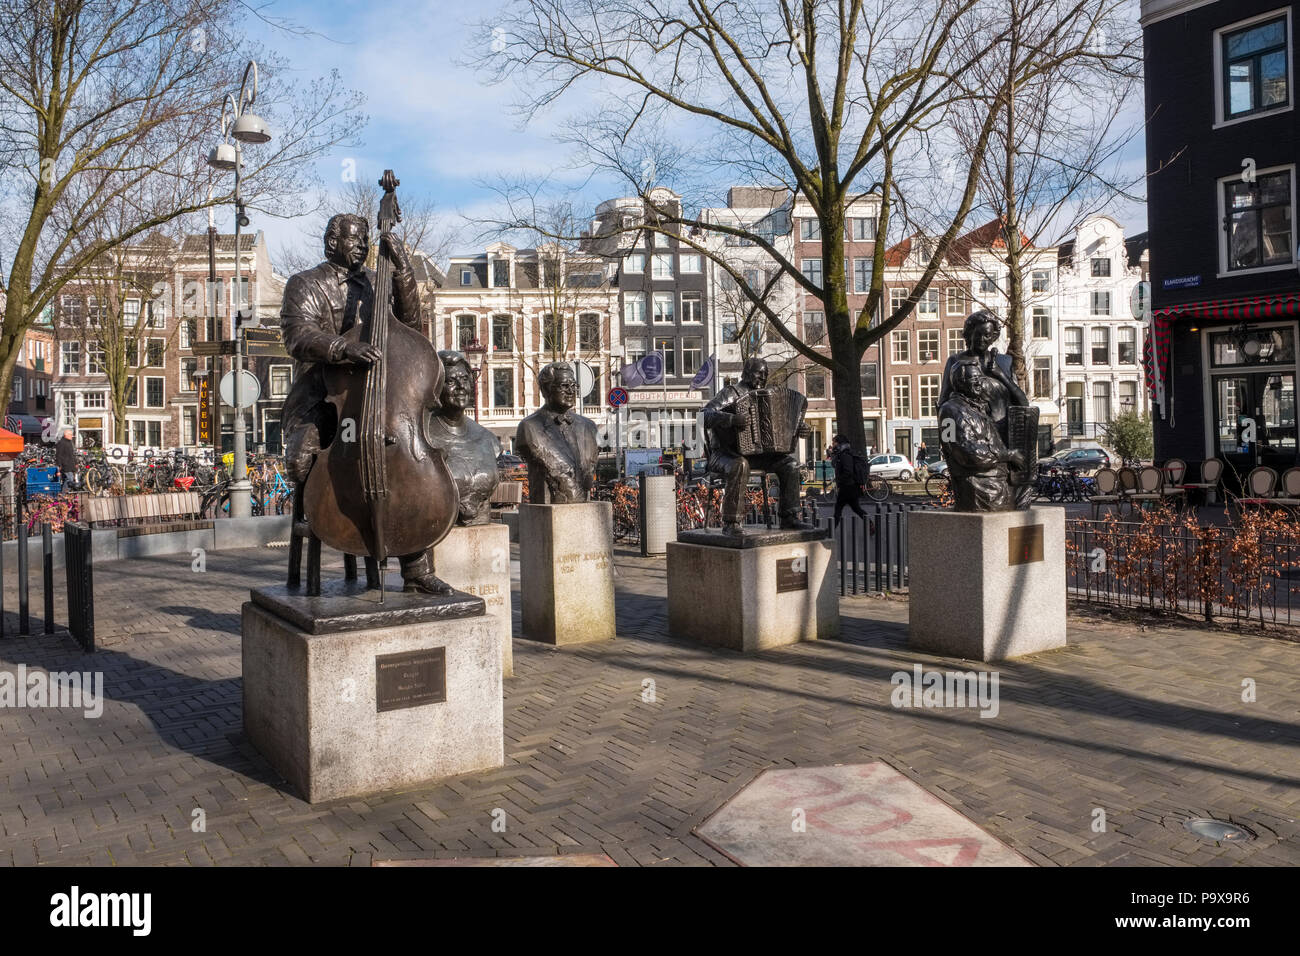 Five statues of famous singers and musicians on the Elandsgracht in Amsterdam, Netherlands, Europe - Stock Image